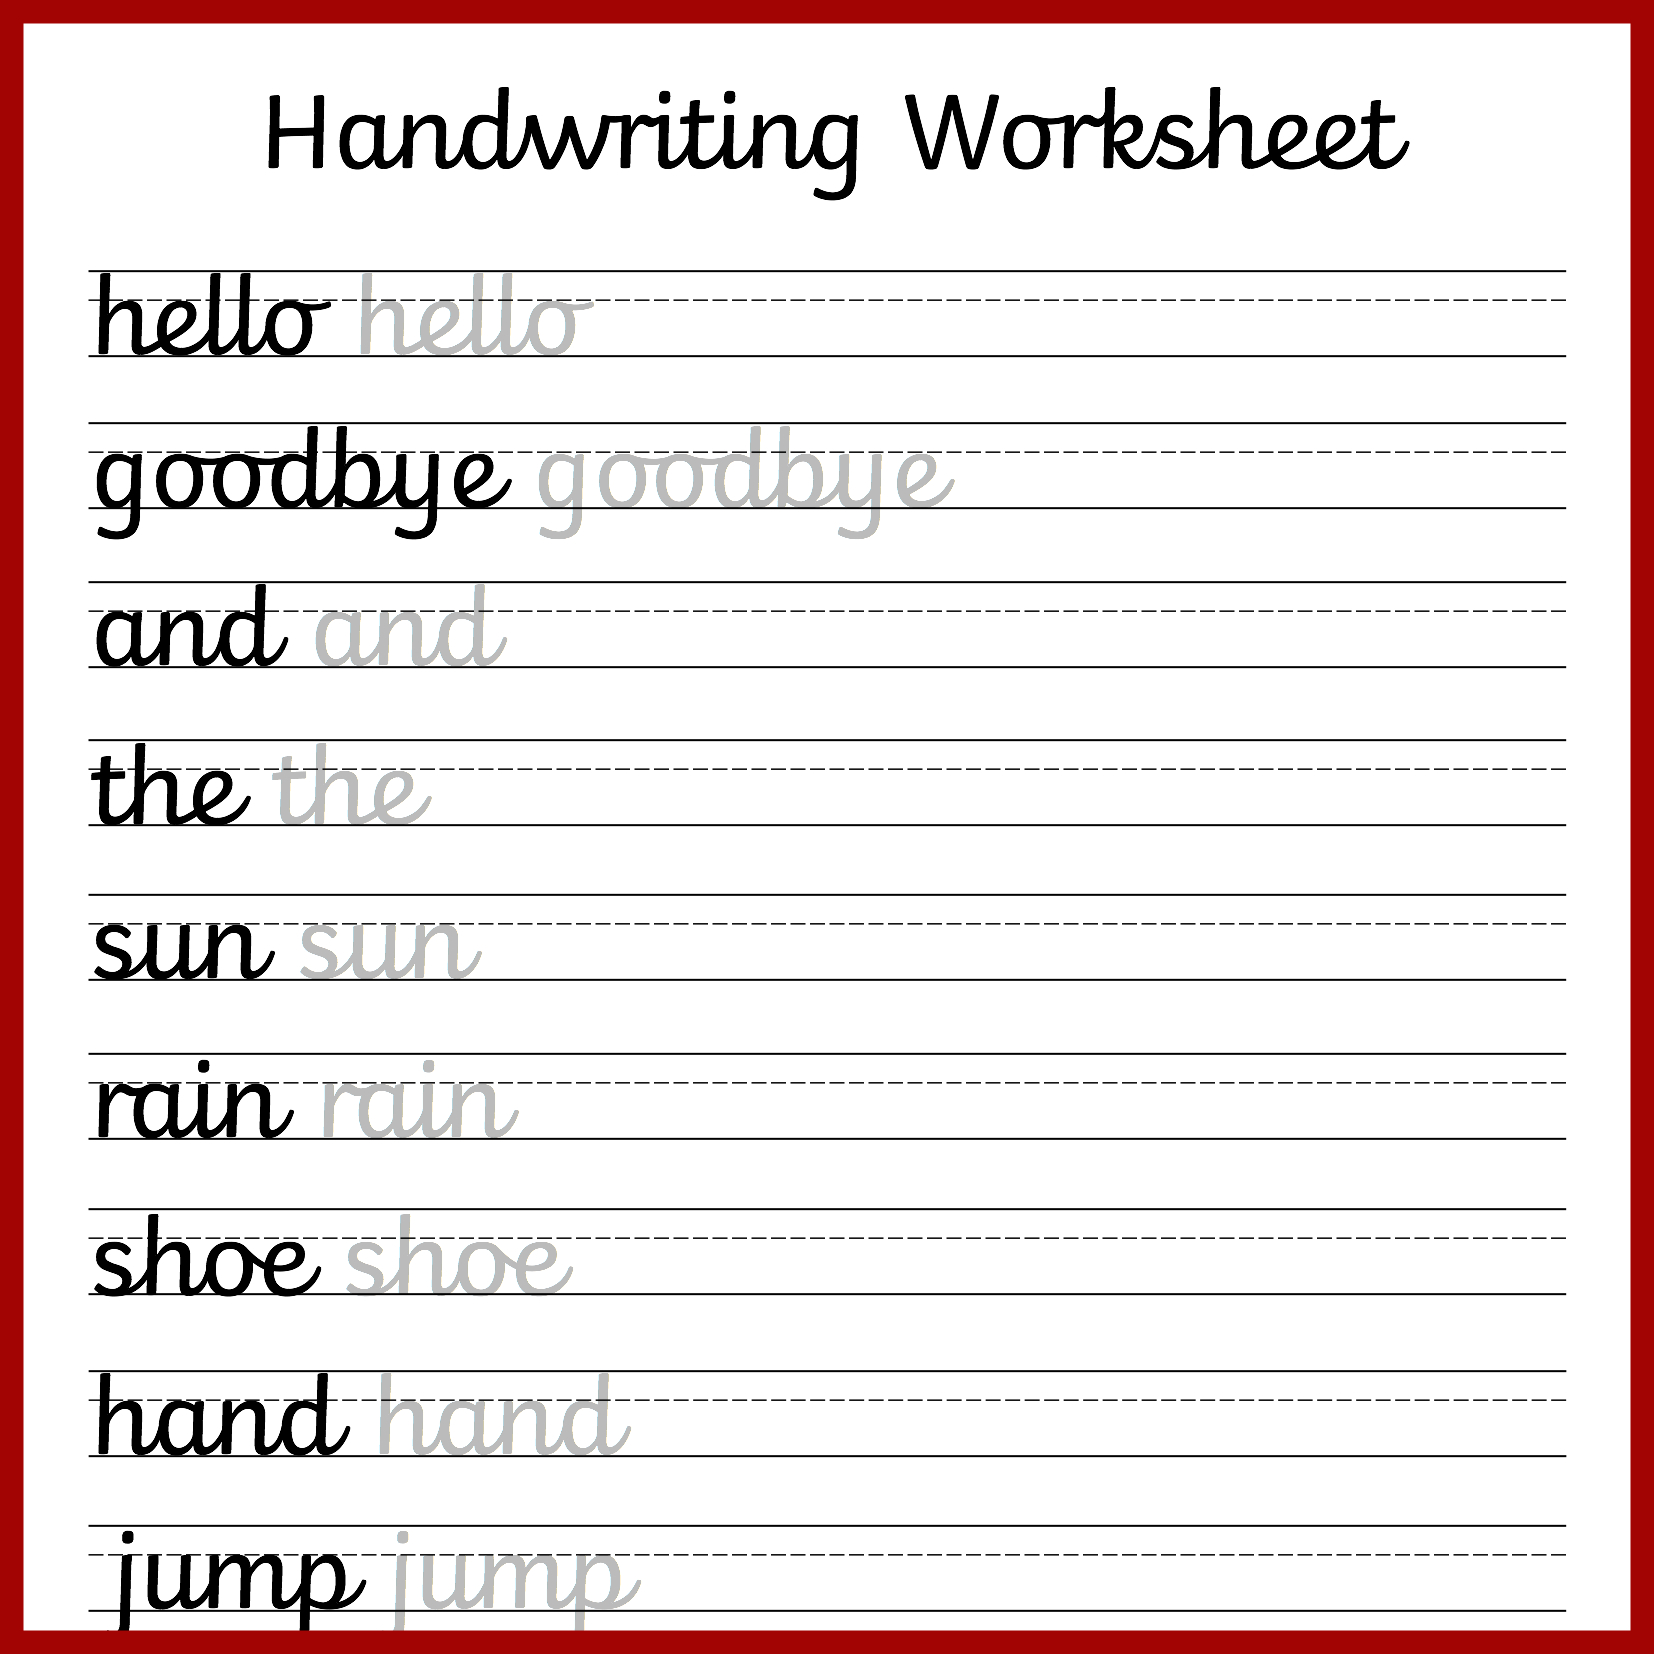 Cursive Handwriting Worksheets – Free Printable! ⋆ Mama Geek - Cursive Letters Worksheet Printable Free